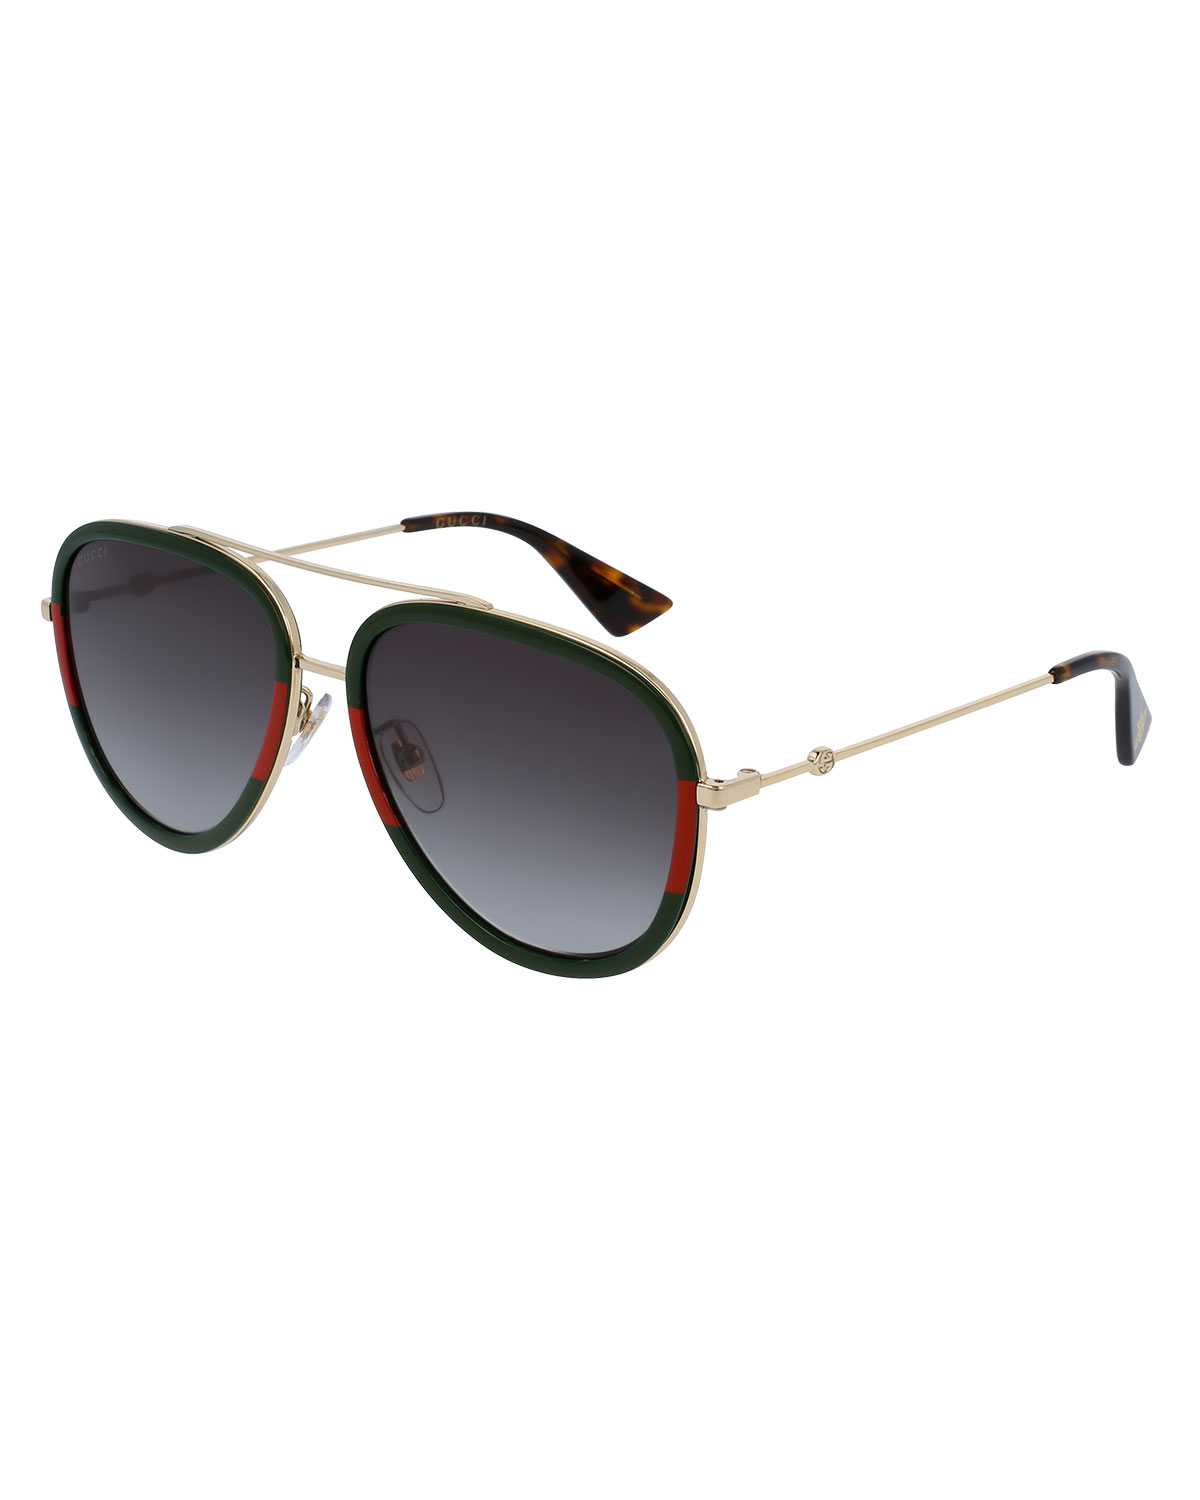 478e946a93 Gucci Web Aviator Sunglasses